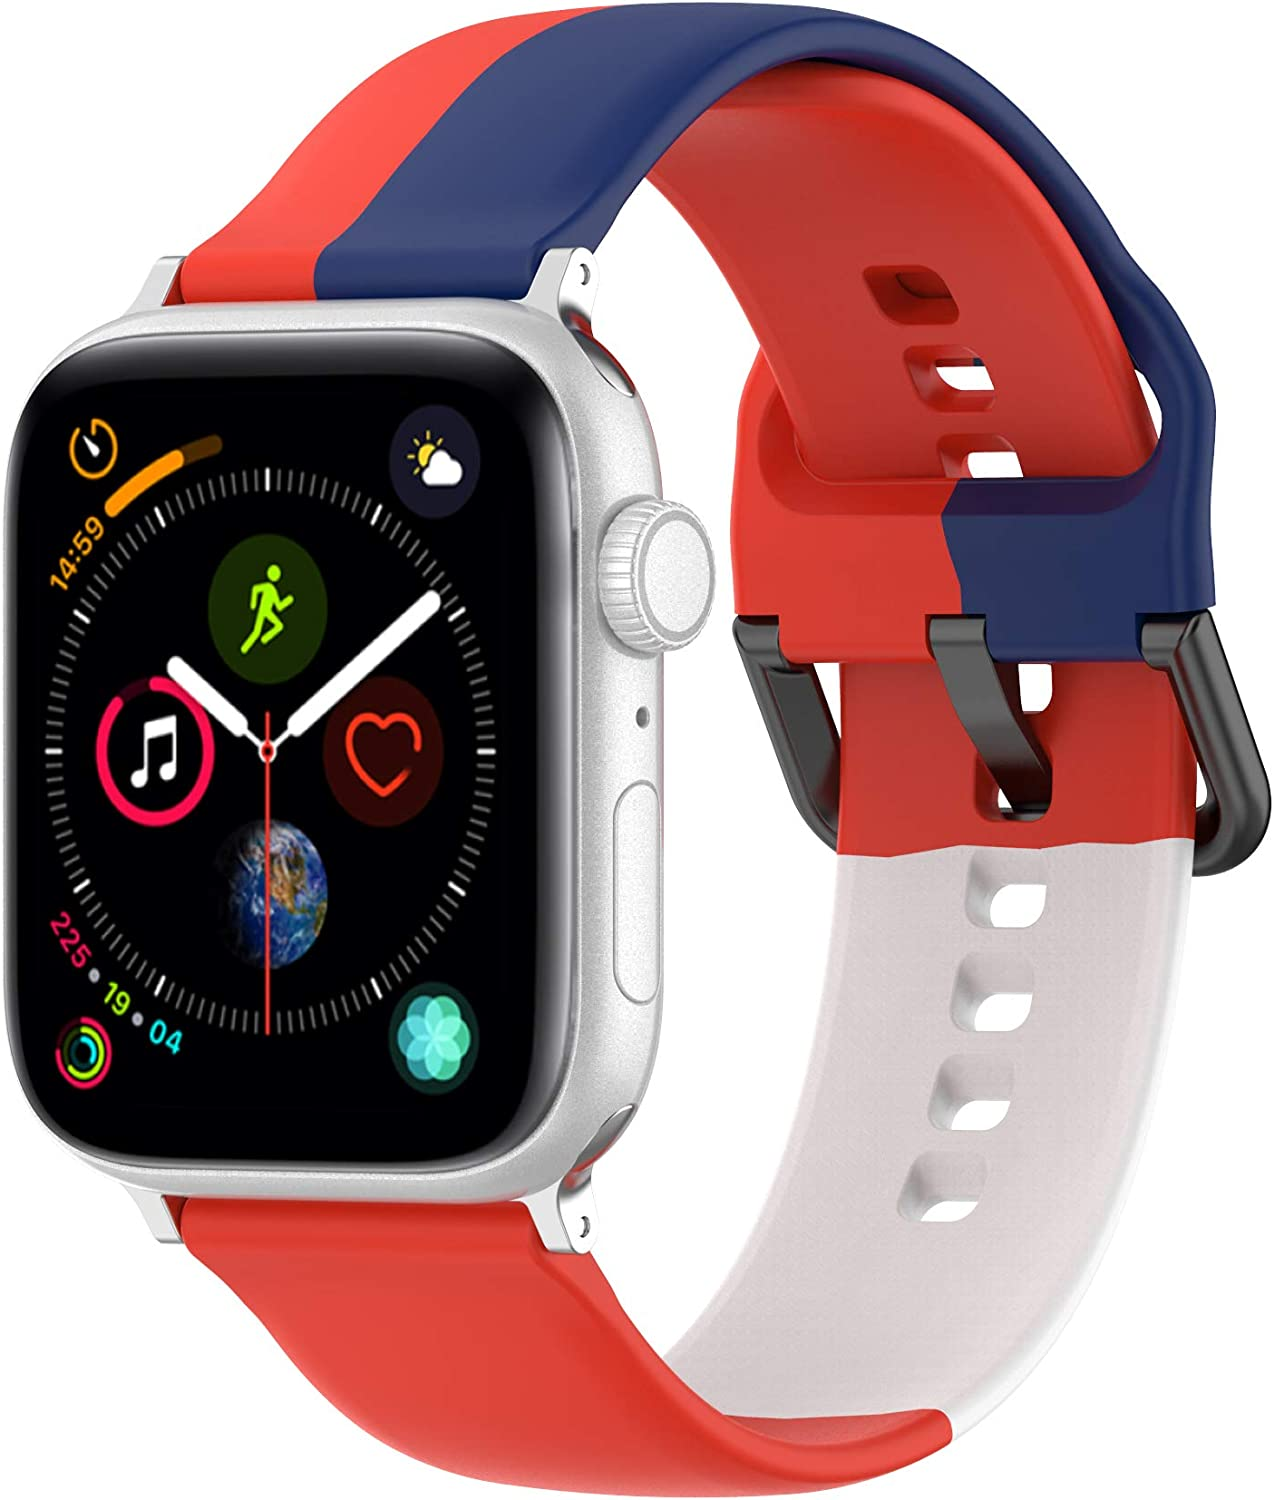 Hazevaiy colorful silicone replaceable strap compatible with apple watch Series 6 5 4 3 2 1 SE for iWatch 44mm 42mm 40mm 38mm smartwatch bands sport waterproof cute soft comfortable design